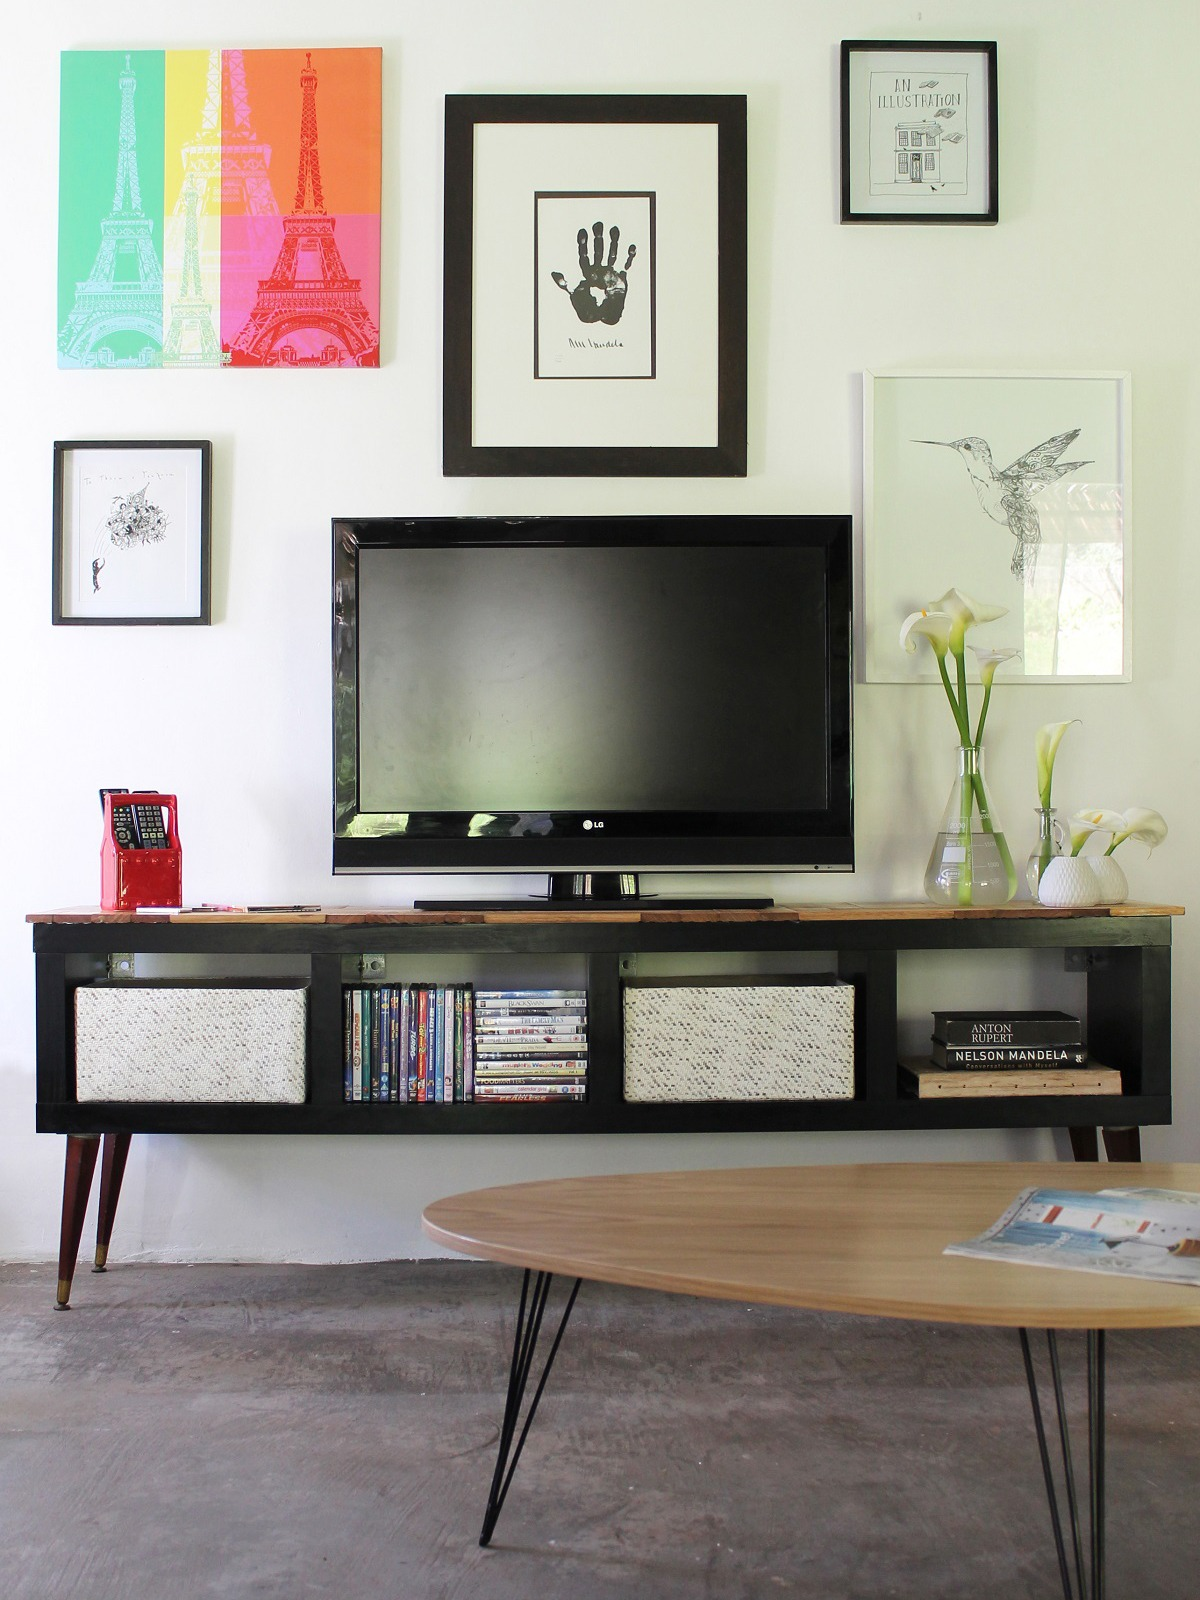 How to make your own DIY Midcentury Modern TV Stand